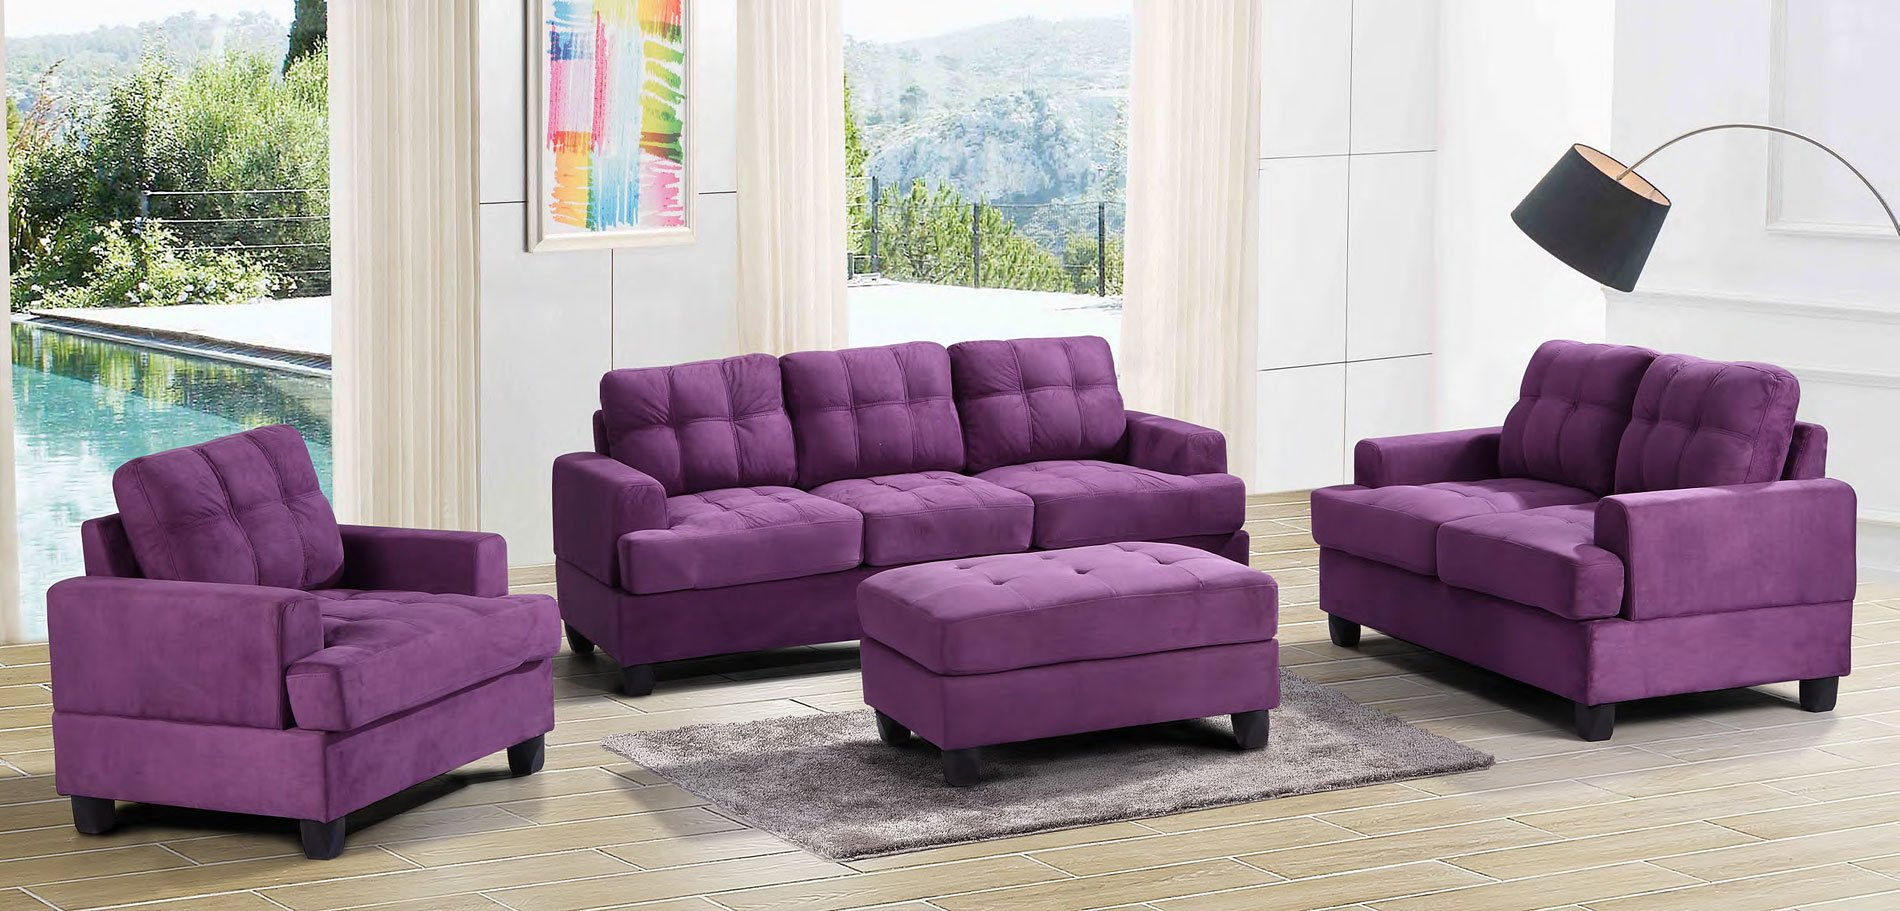 g517 living room set purple living room sets living room furniture living room. Black Bedroom Furniture Sets. Home Design Ideas